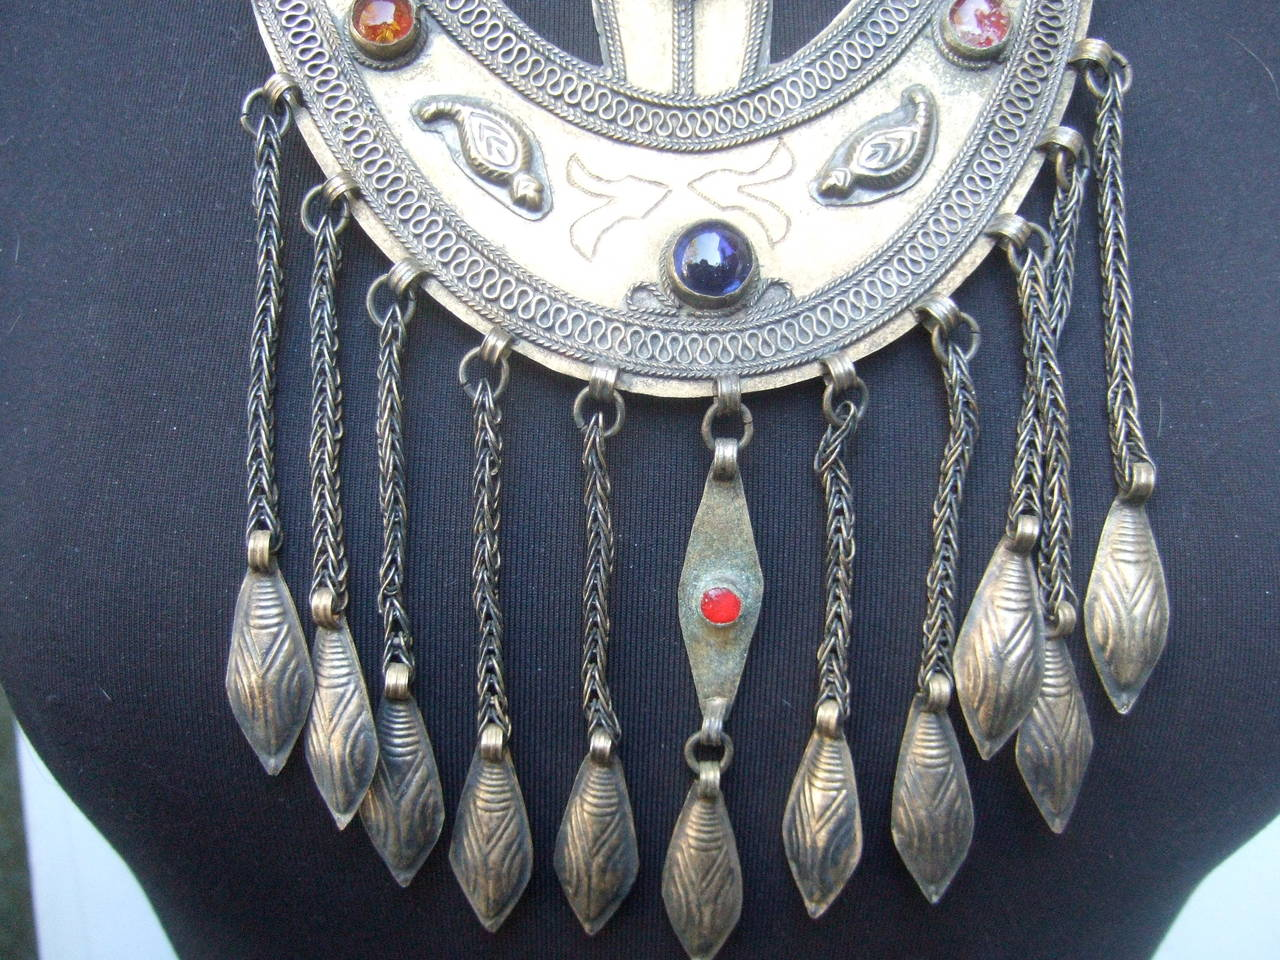 Massive Egyptian Revival Style Jeweled Serpent Ceremonial Necklace In Excellent Condition For Sale In Santa Barbara, CA